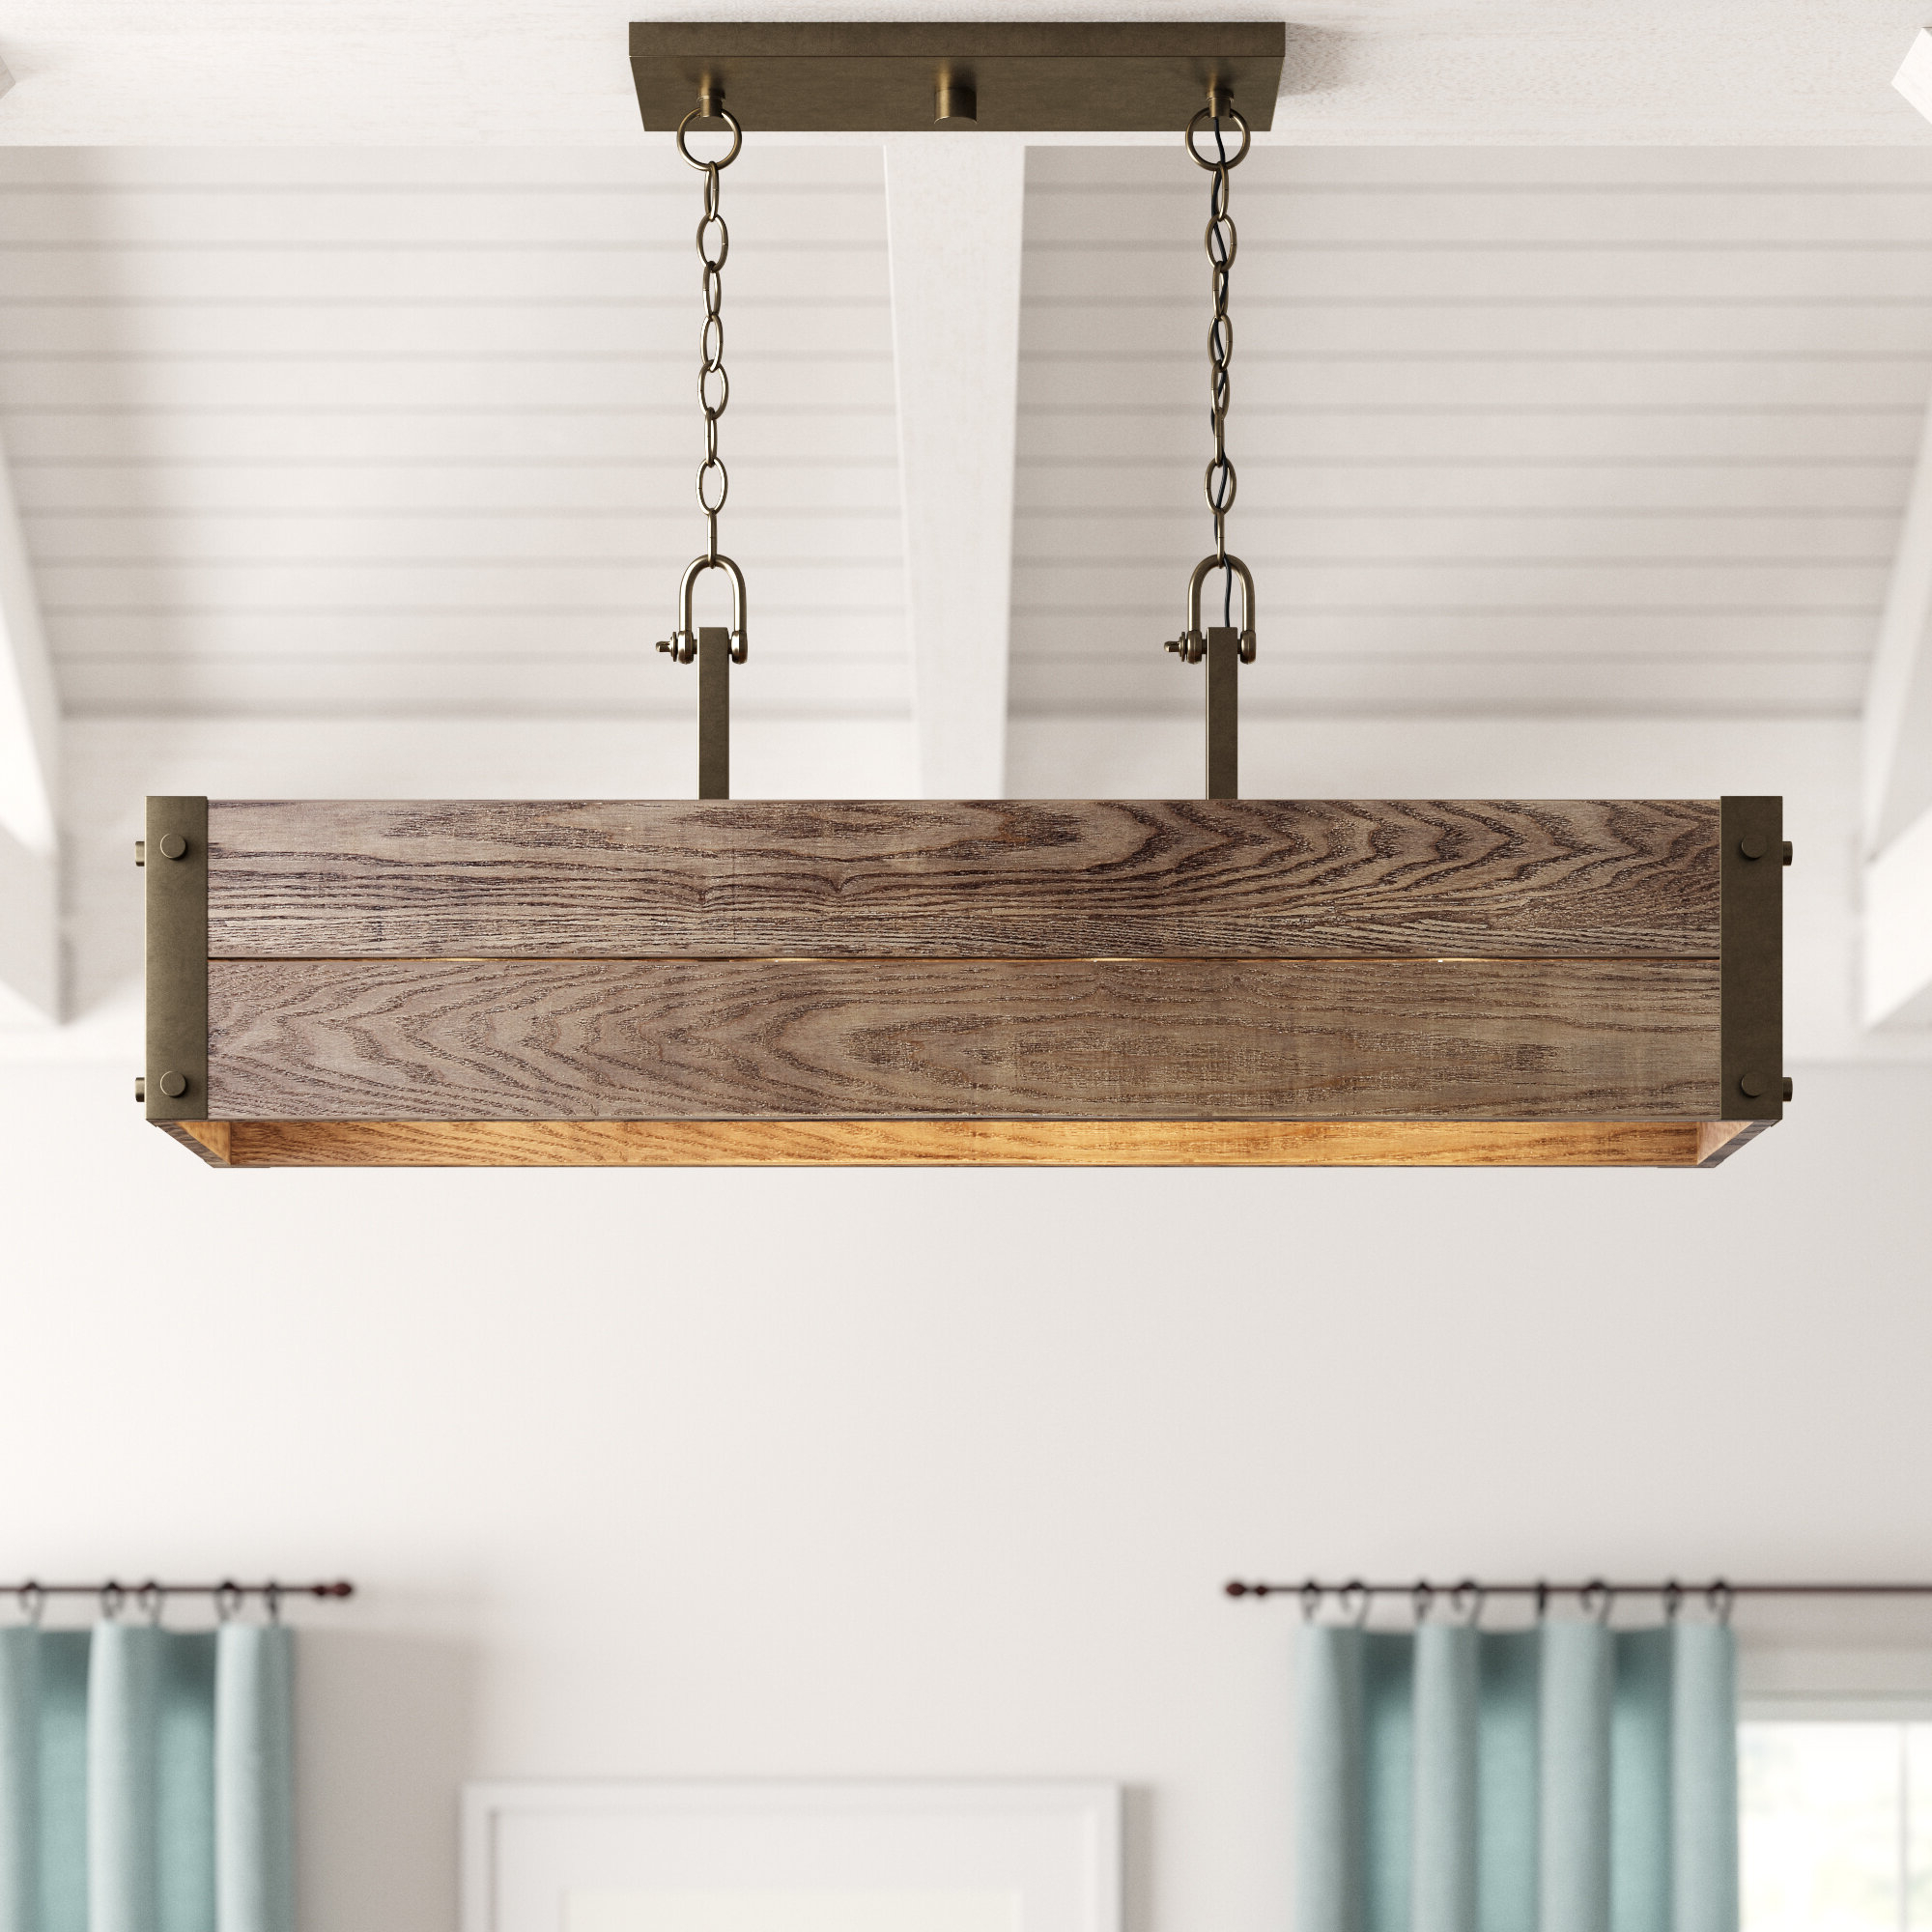 Current Cathey 4 Light Kitchen Island Linear Pendant Regarding Euclid 2 Light Kitchen Island Linear Pendants (View 4 of 25)